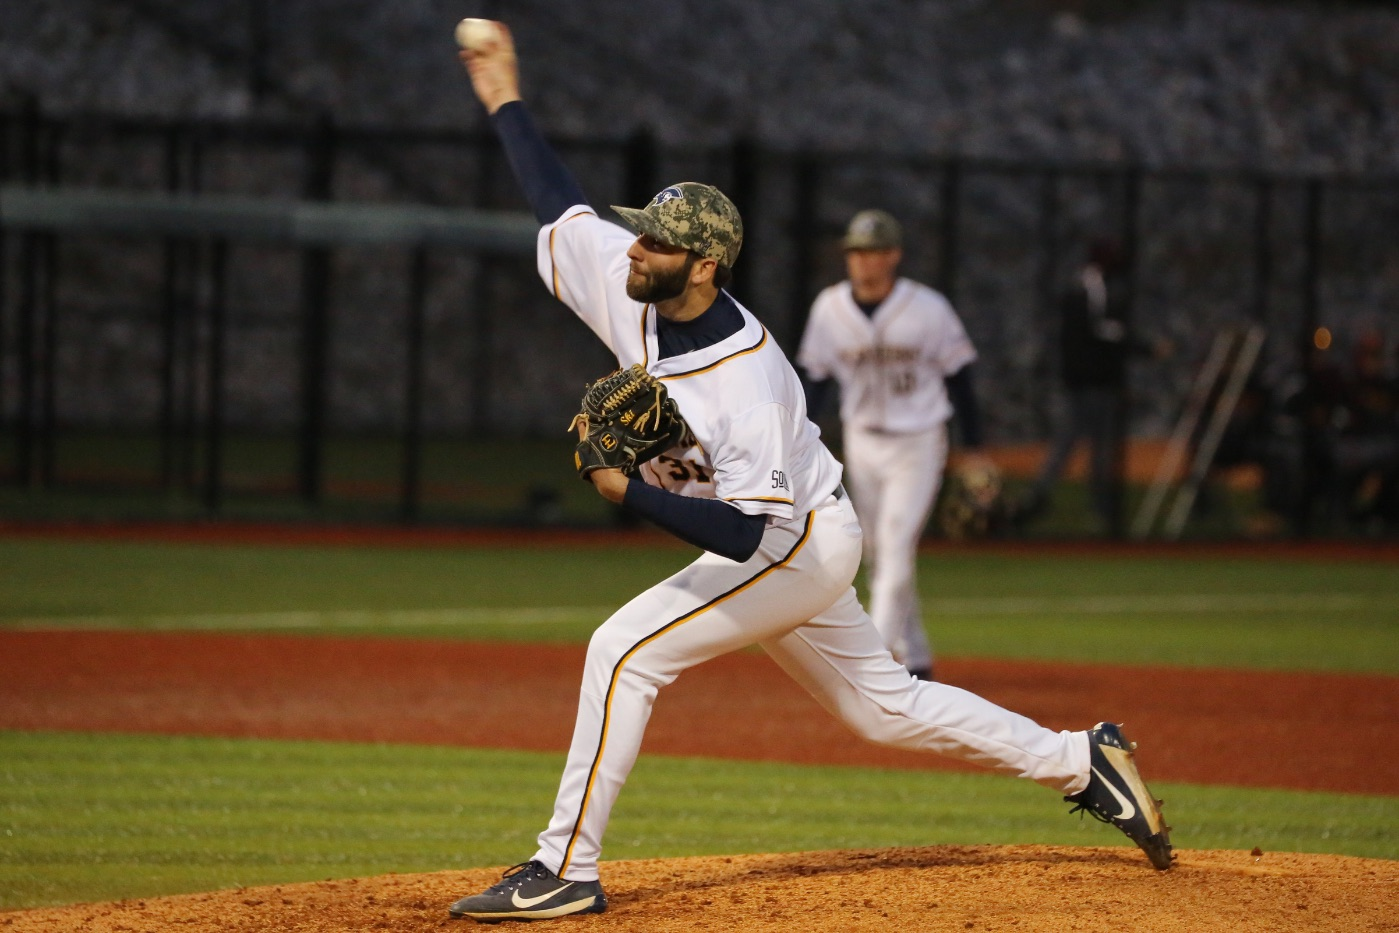 Strong pitching leads ETSU past Samford for series win